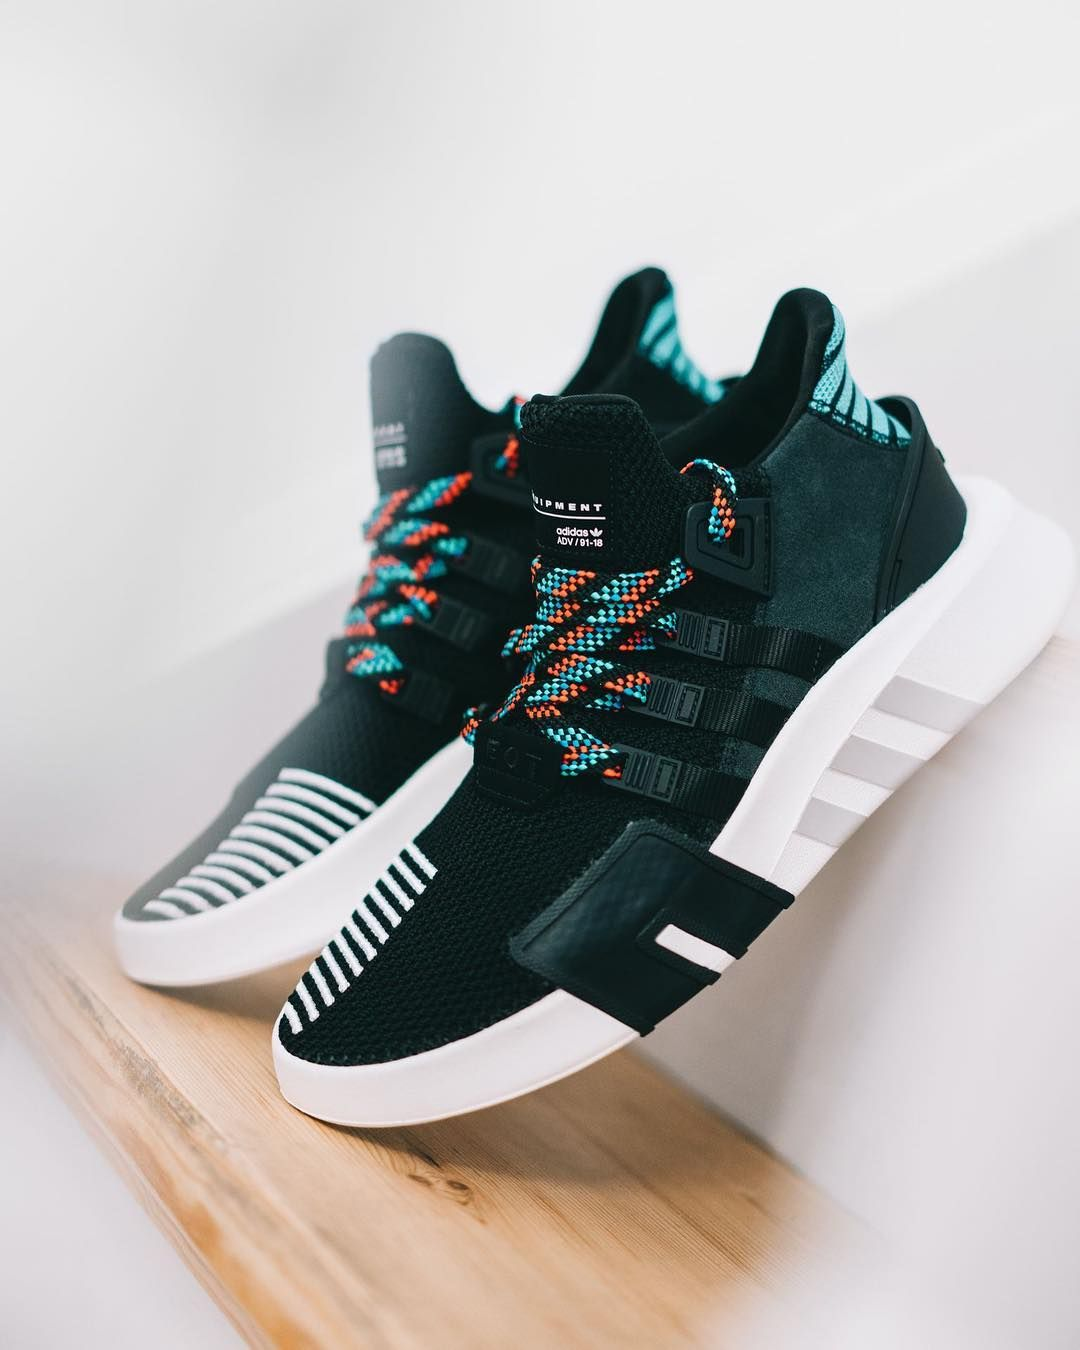 the best attitude b3b7e 2f908 Release Date   February 1, 2018 Adidas EQT Bask ADV Core Black   Sub Green  Credit   Rezet Store